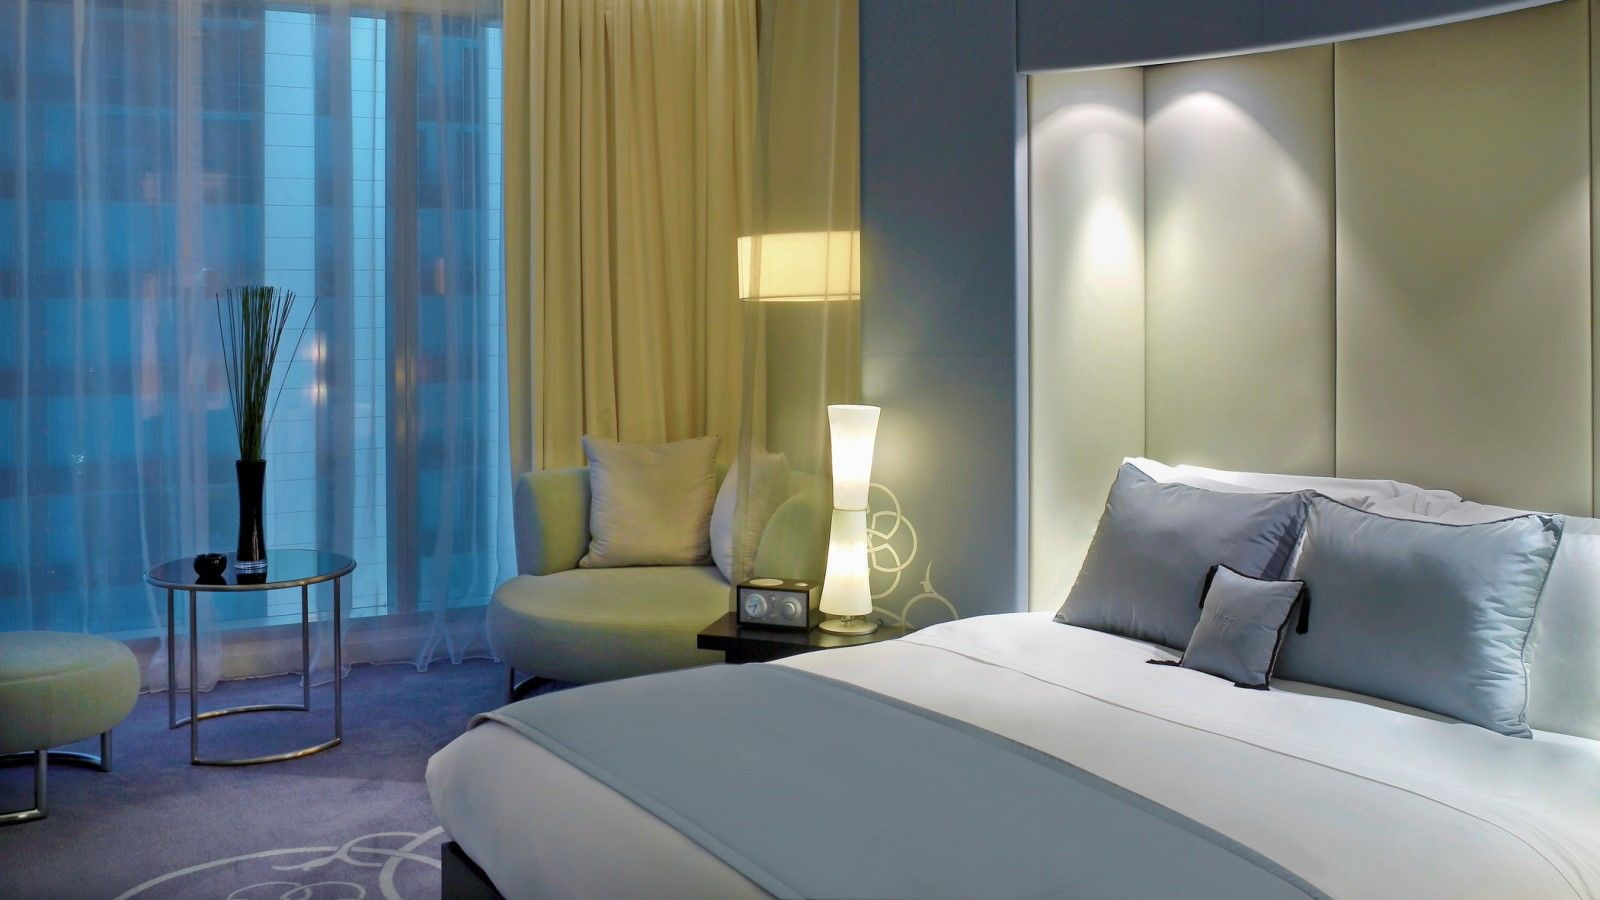 W doha hotel residences 5 star hotel in doha for W hotel bedroom designs